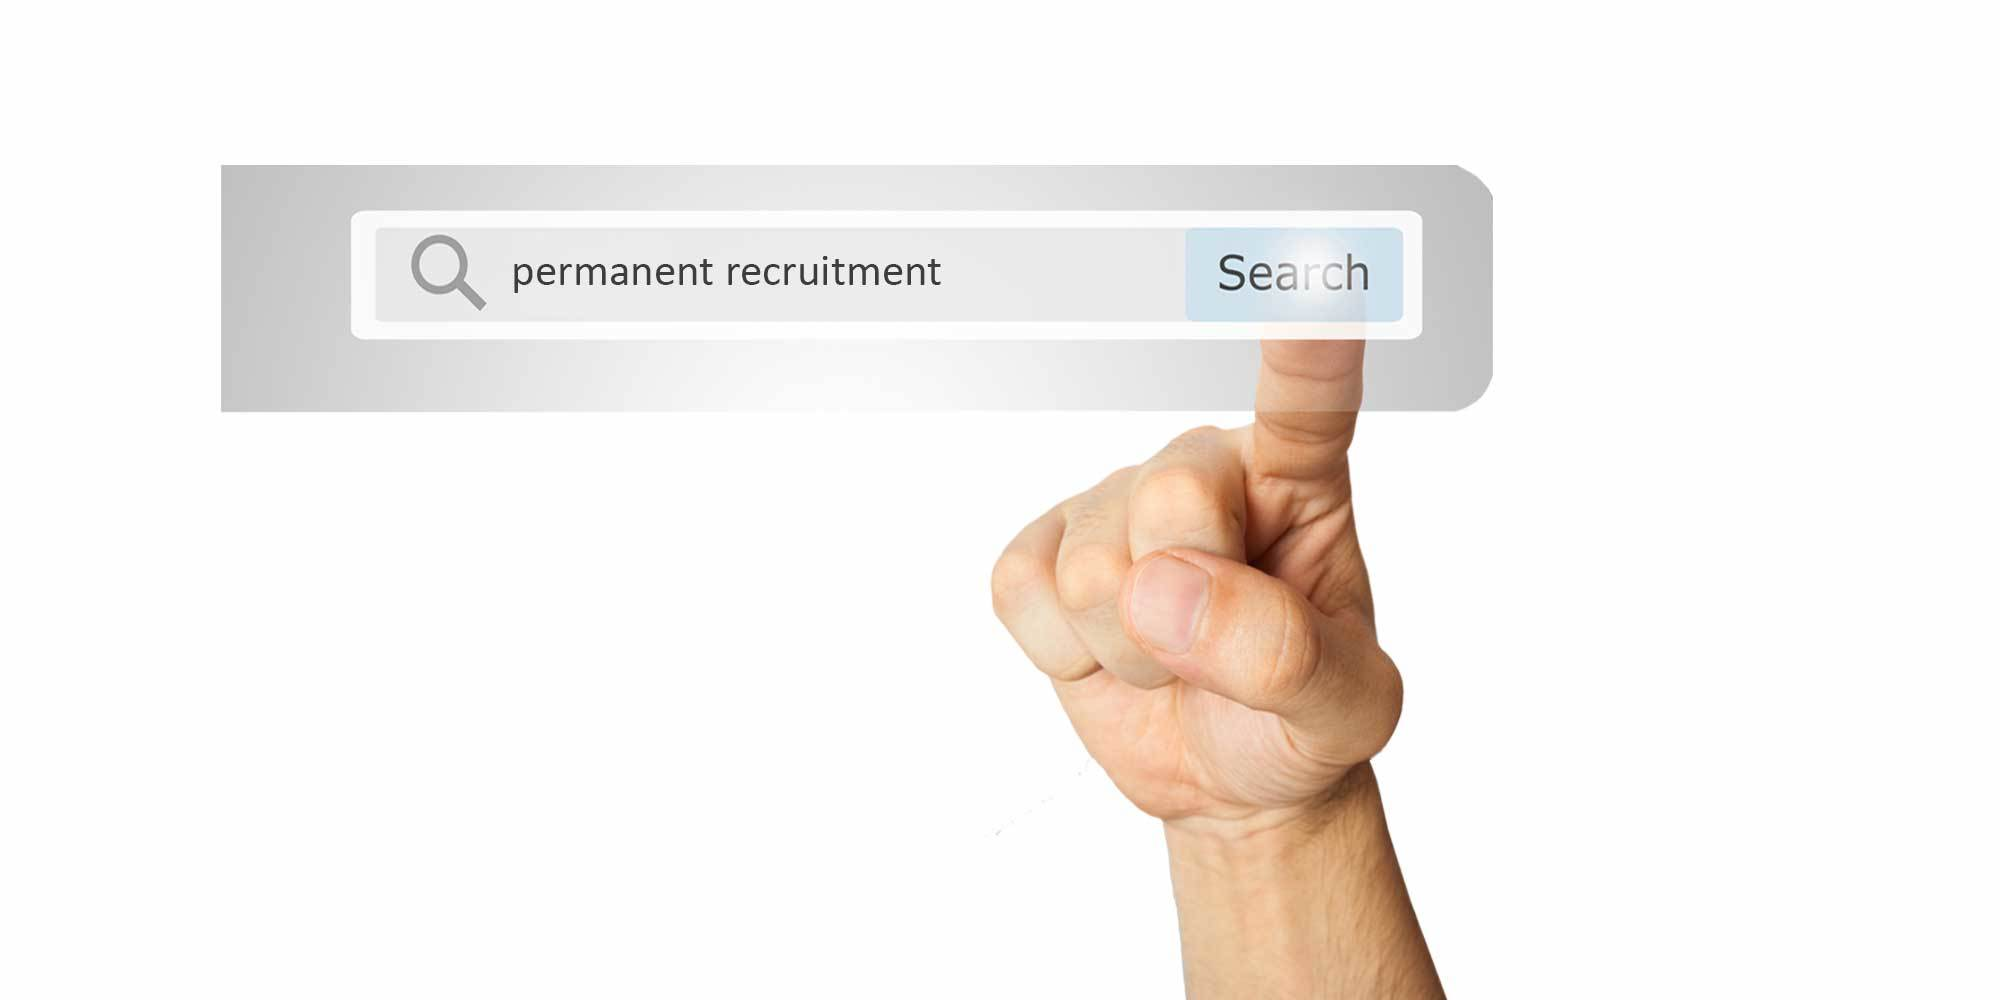 Permanent recruitment search